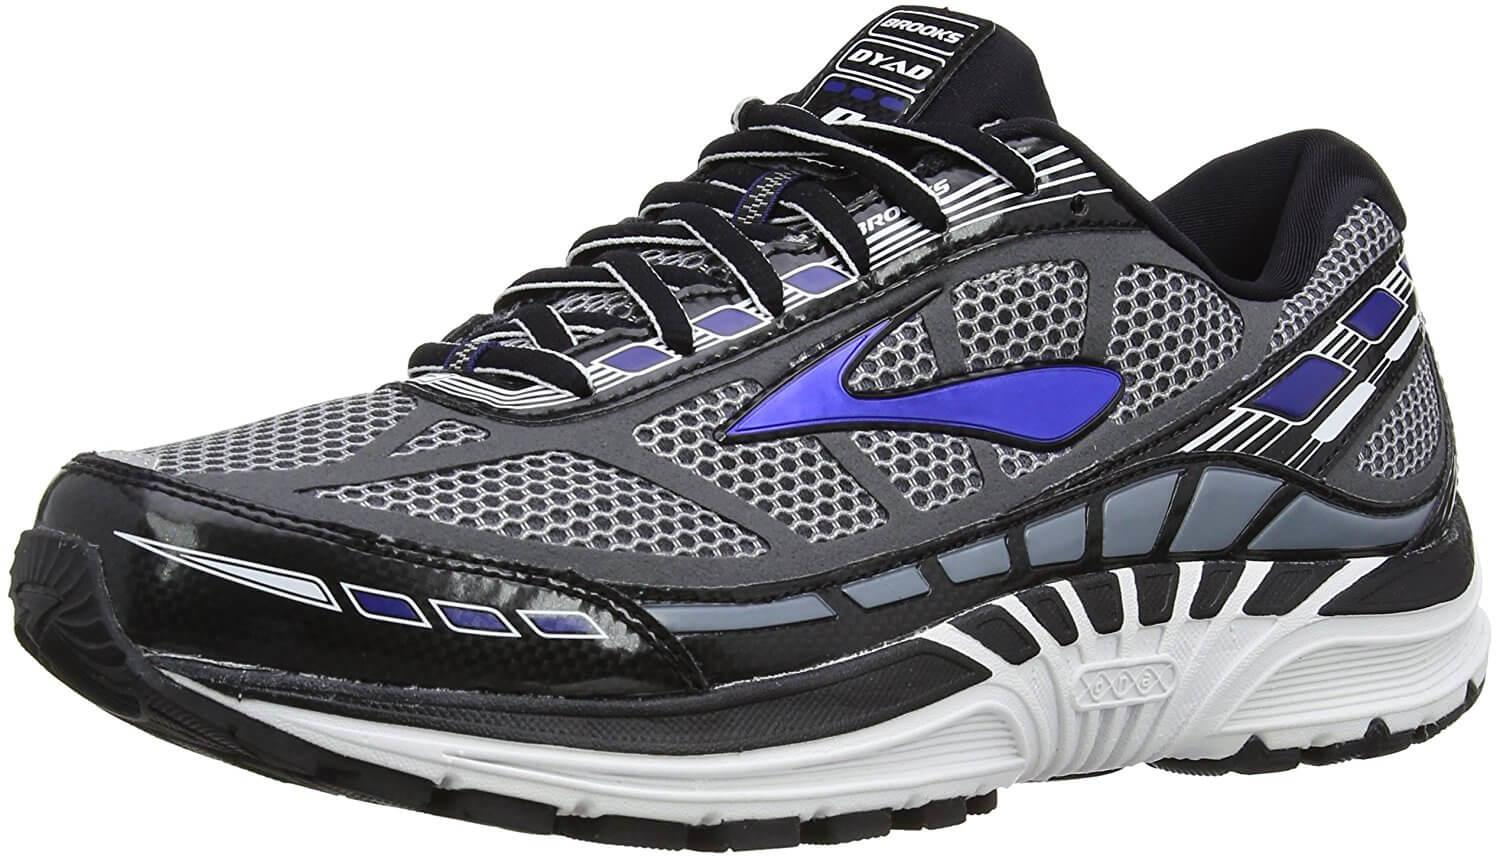 Brooks Dyad 8 Fully Reviewed and